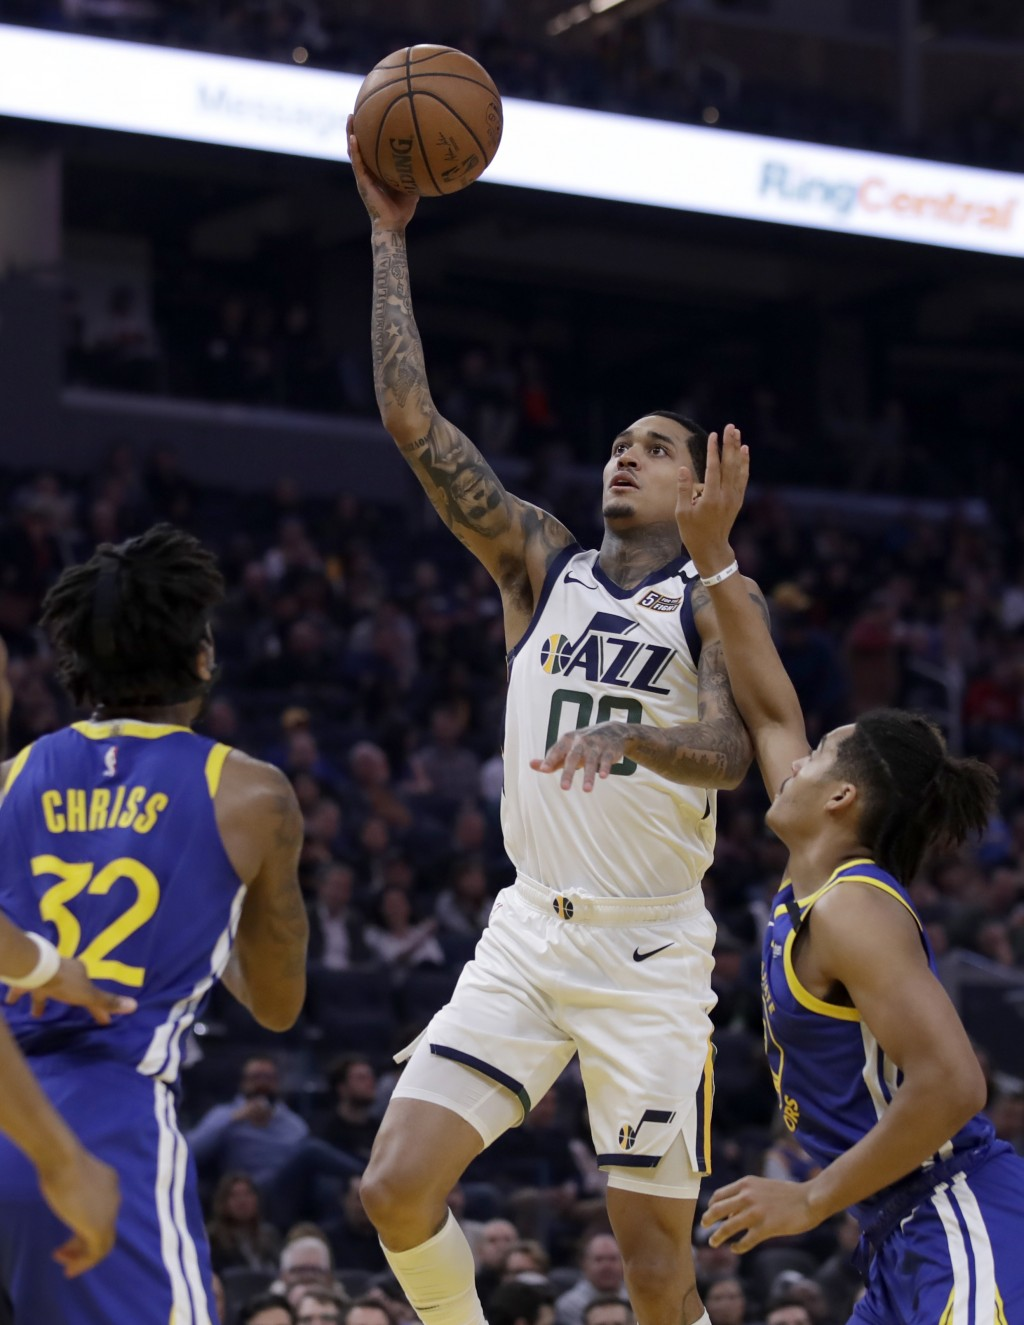 Utah Jazz guard Jordan Clarkson, center, shoots between Golden State Warriors' Marquese Chriss (32) and Jordan Poole in the first half of an NBA baske...